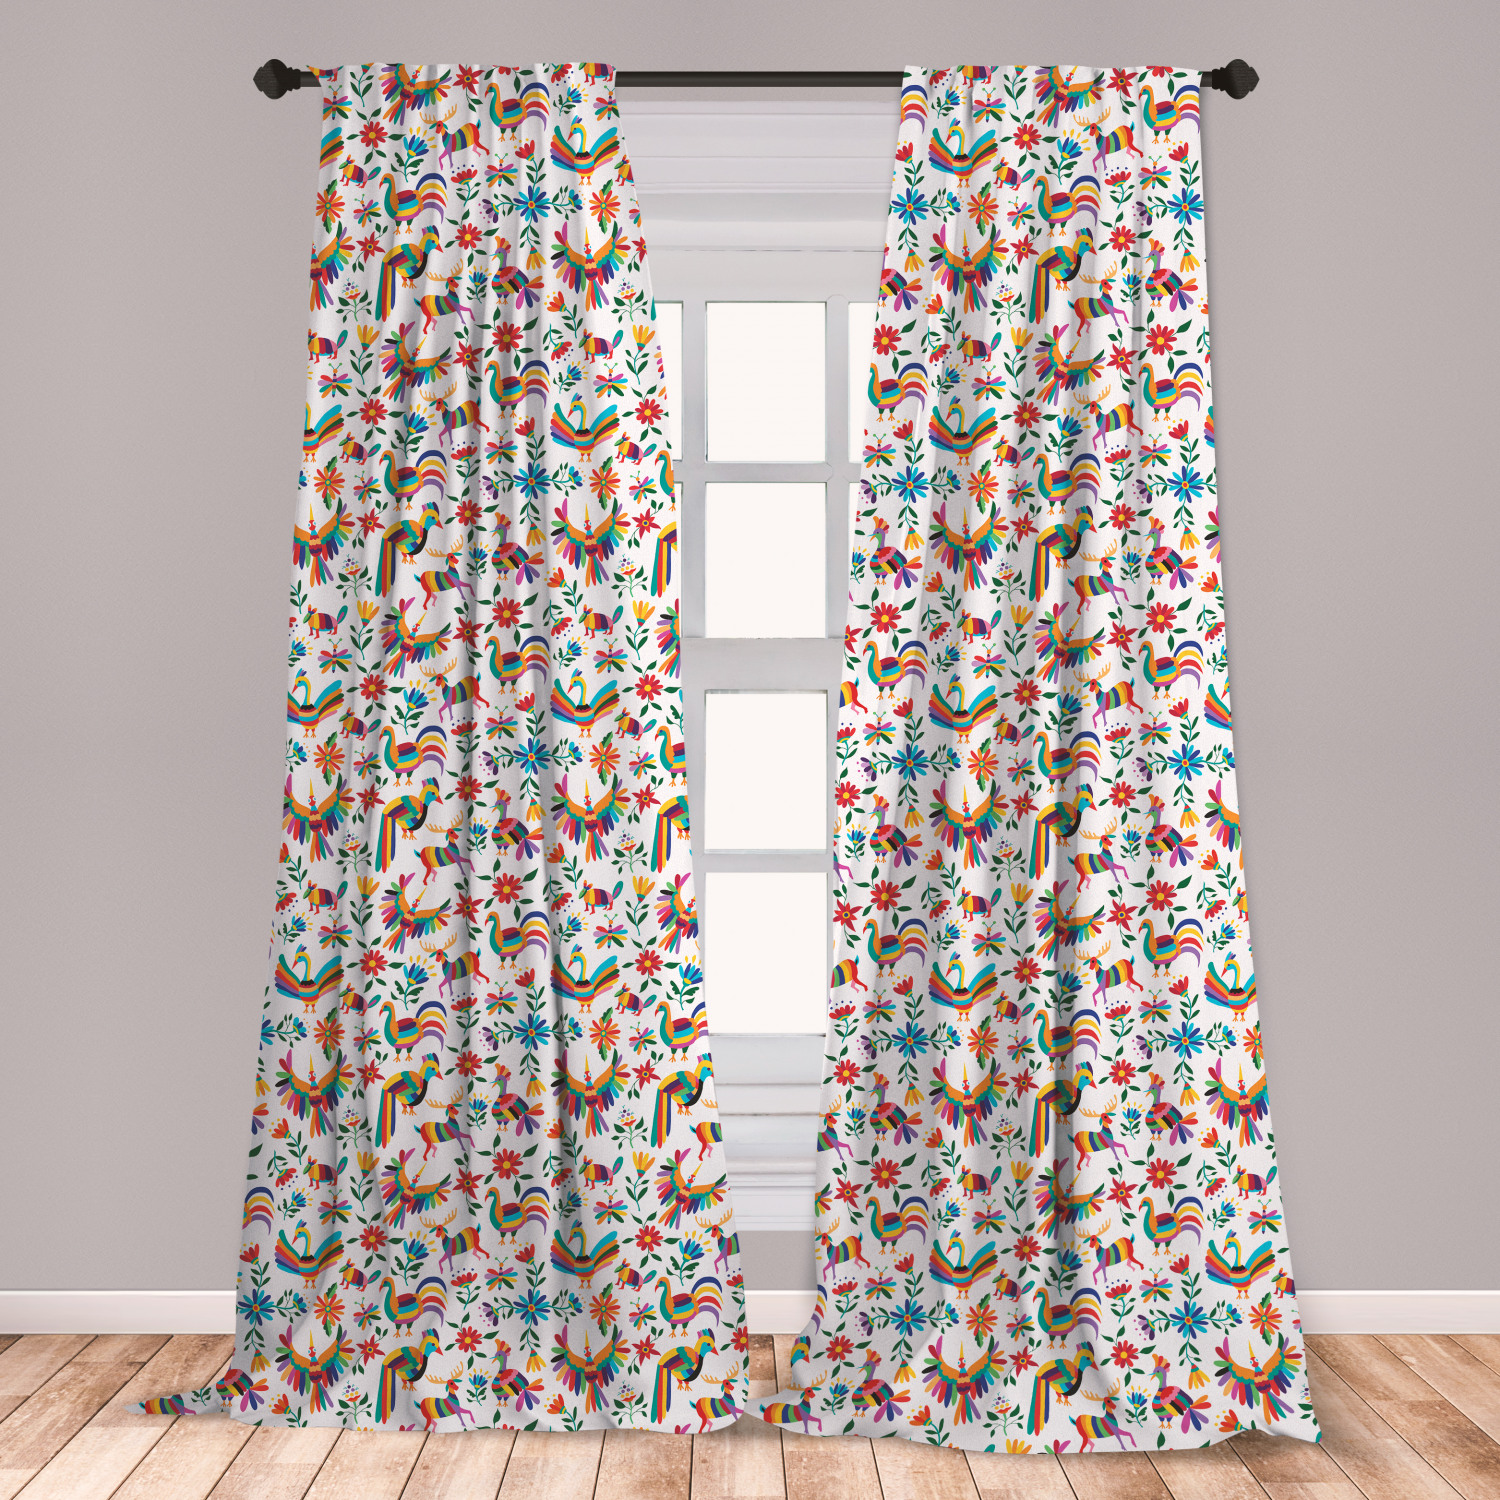 Mexican Curtains 2 Panels Set, Traditional Latin American